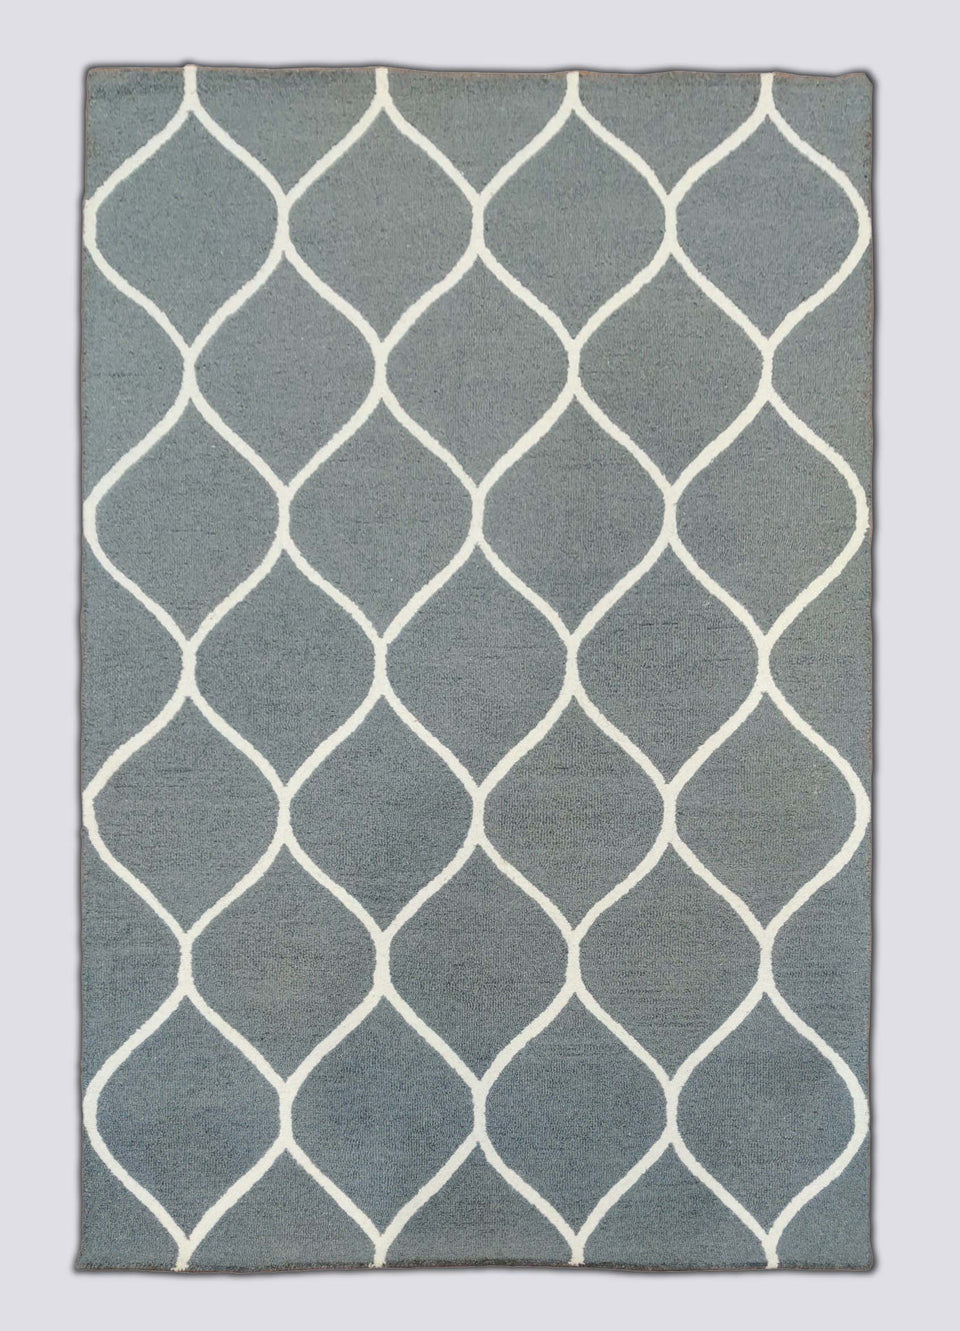 Misty Grey Hand Tufted Wool Carpet 8 x 5